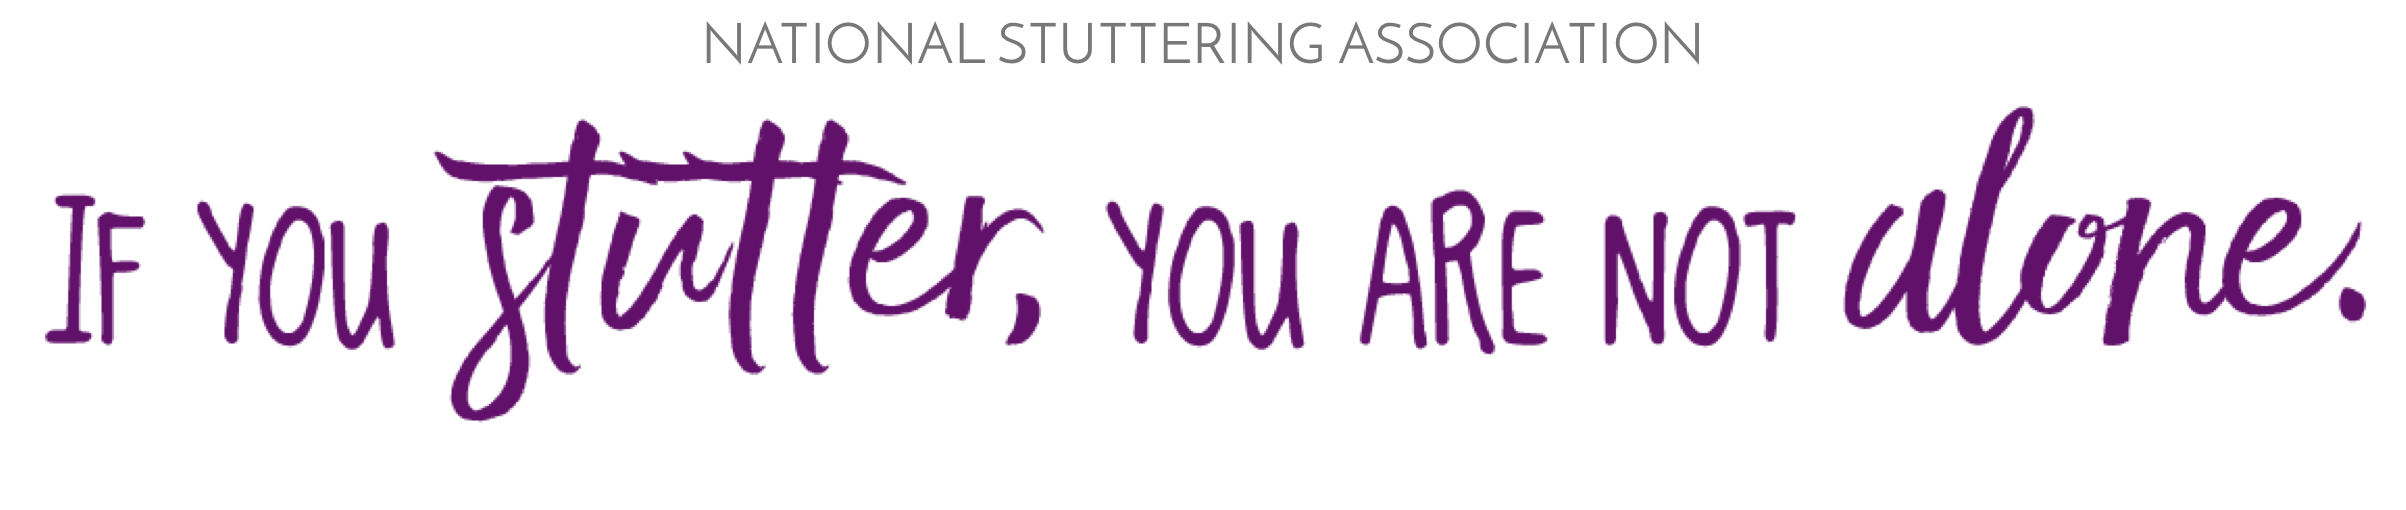 If you stutter you are not alone